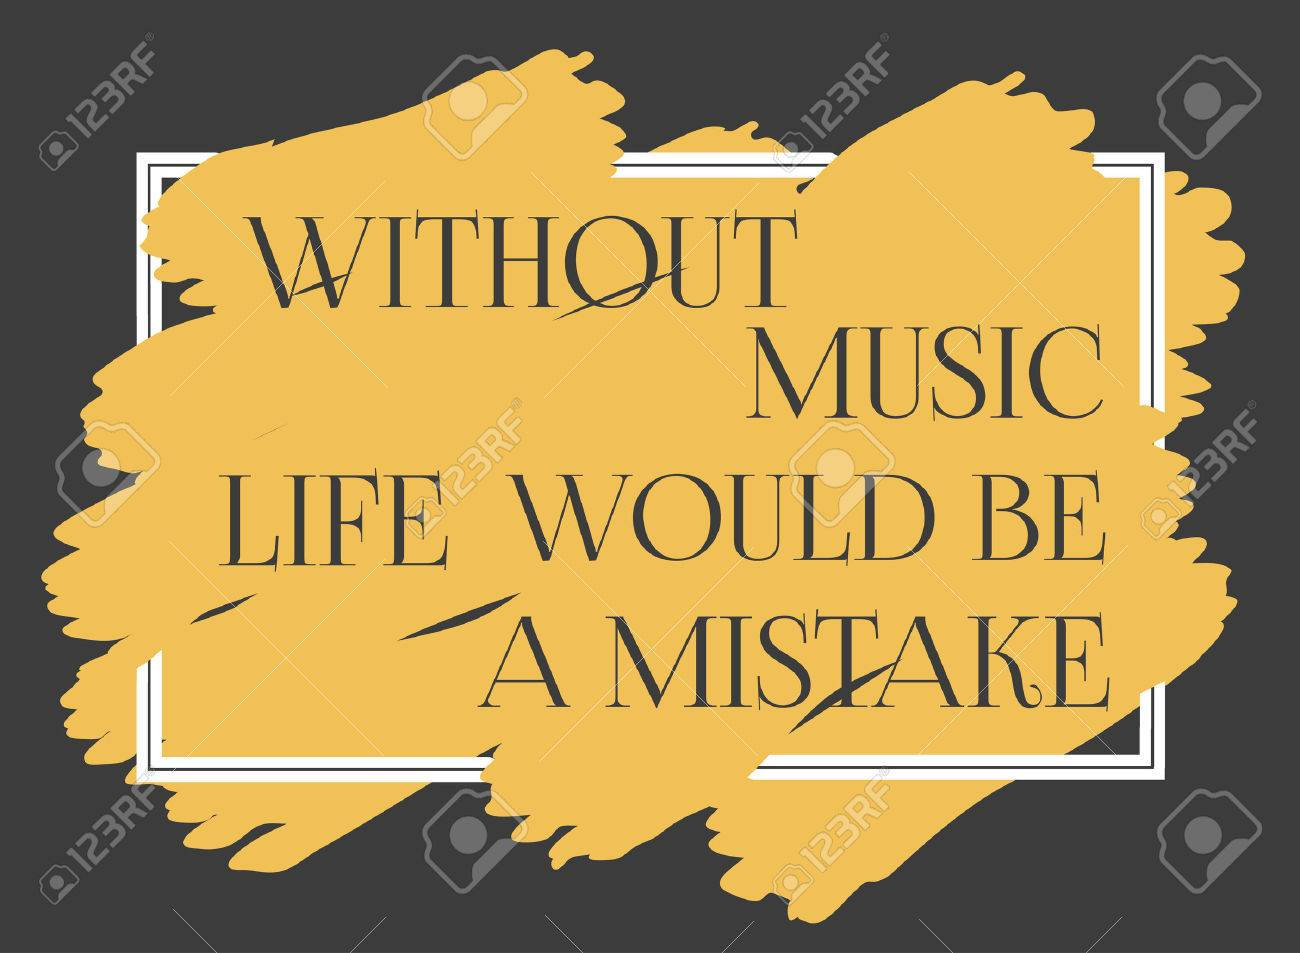 Motivated Music Quote Motivational Poster With Famous Quotation